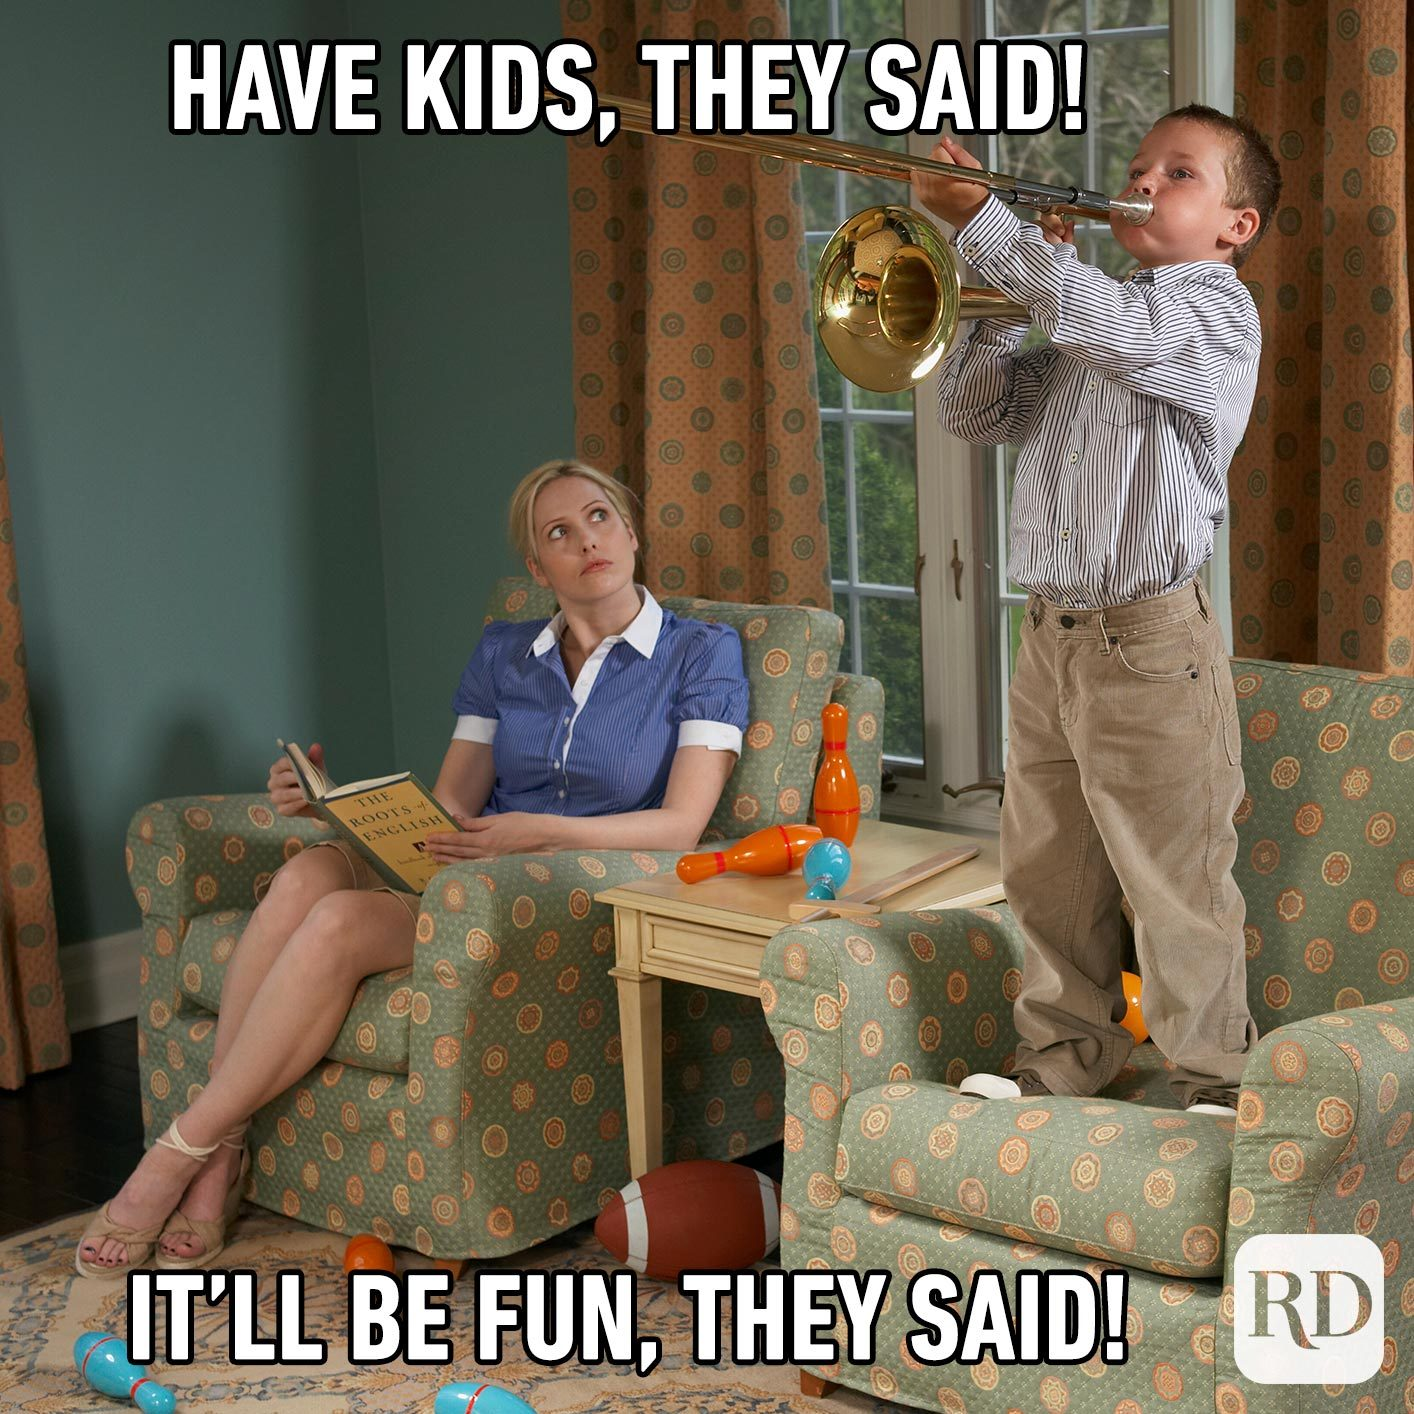 Child playing trumpet, standing on the couch, while mother watches. MEME TEXT: Have kids, they said! It'll be fun, they said!